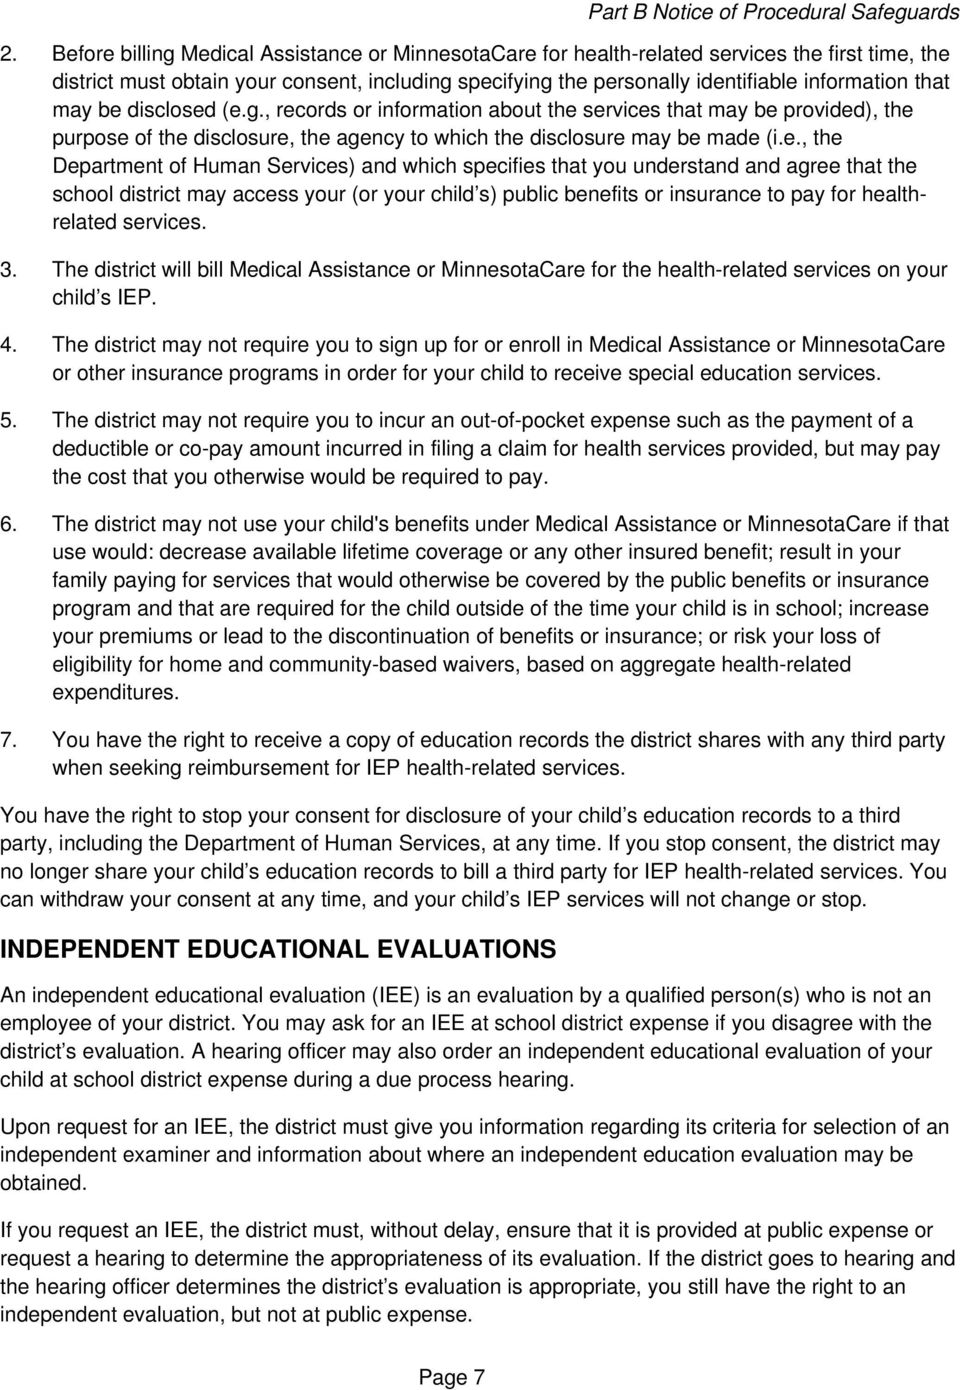 Notice Of Special Education Procedural Safeguards For Ospi >> Part B Notice Of Procedural Safeguards Parental Rights For Public